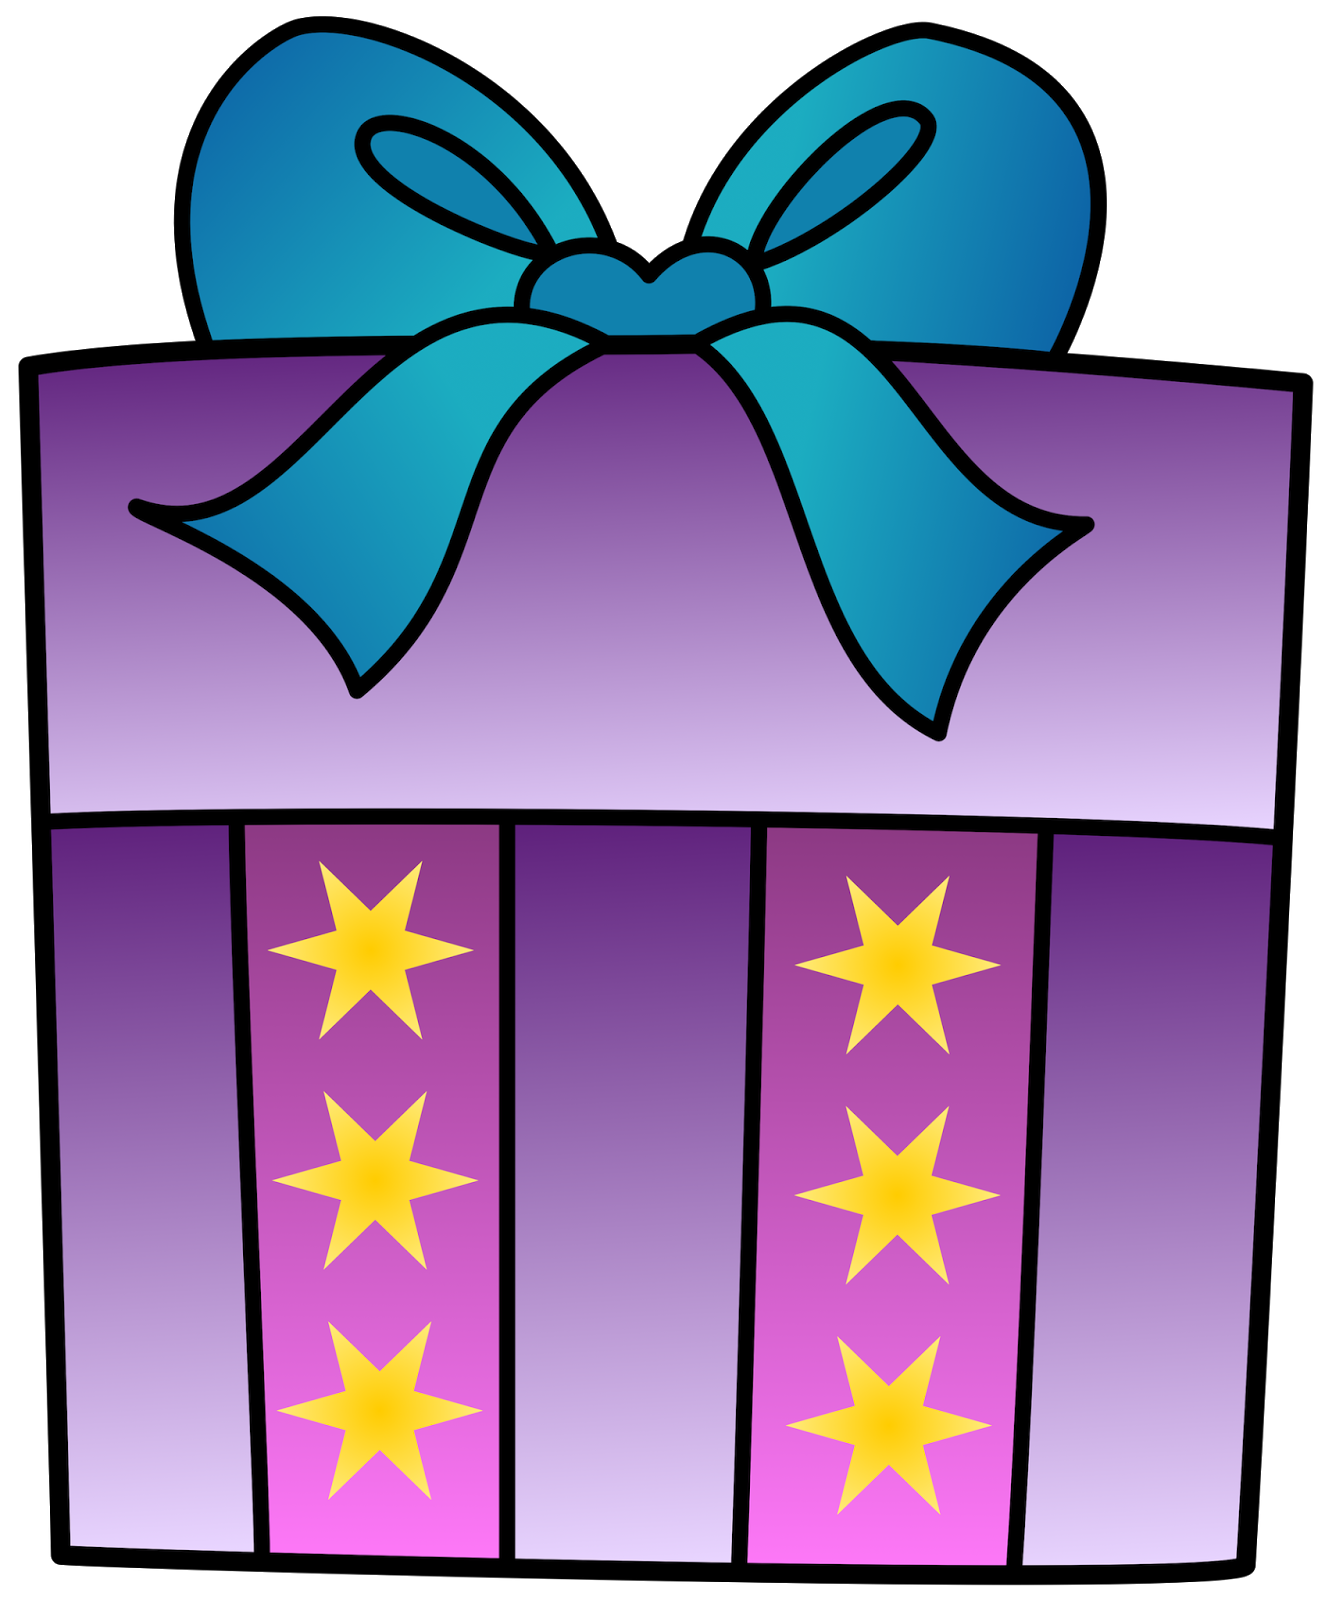 Gifts clipart birthday present. Free gift cliparts download